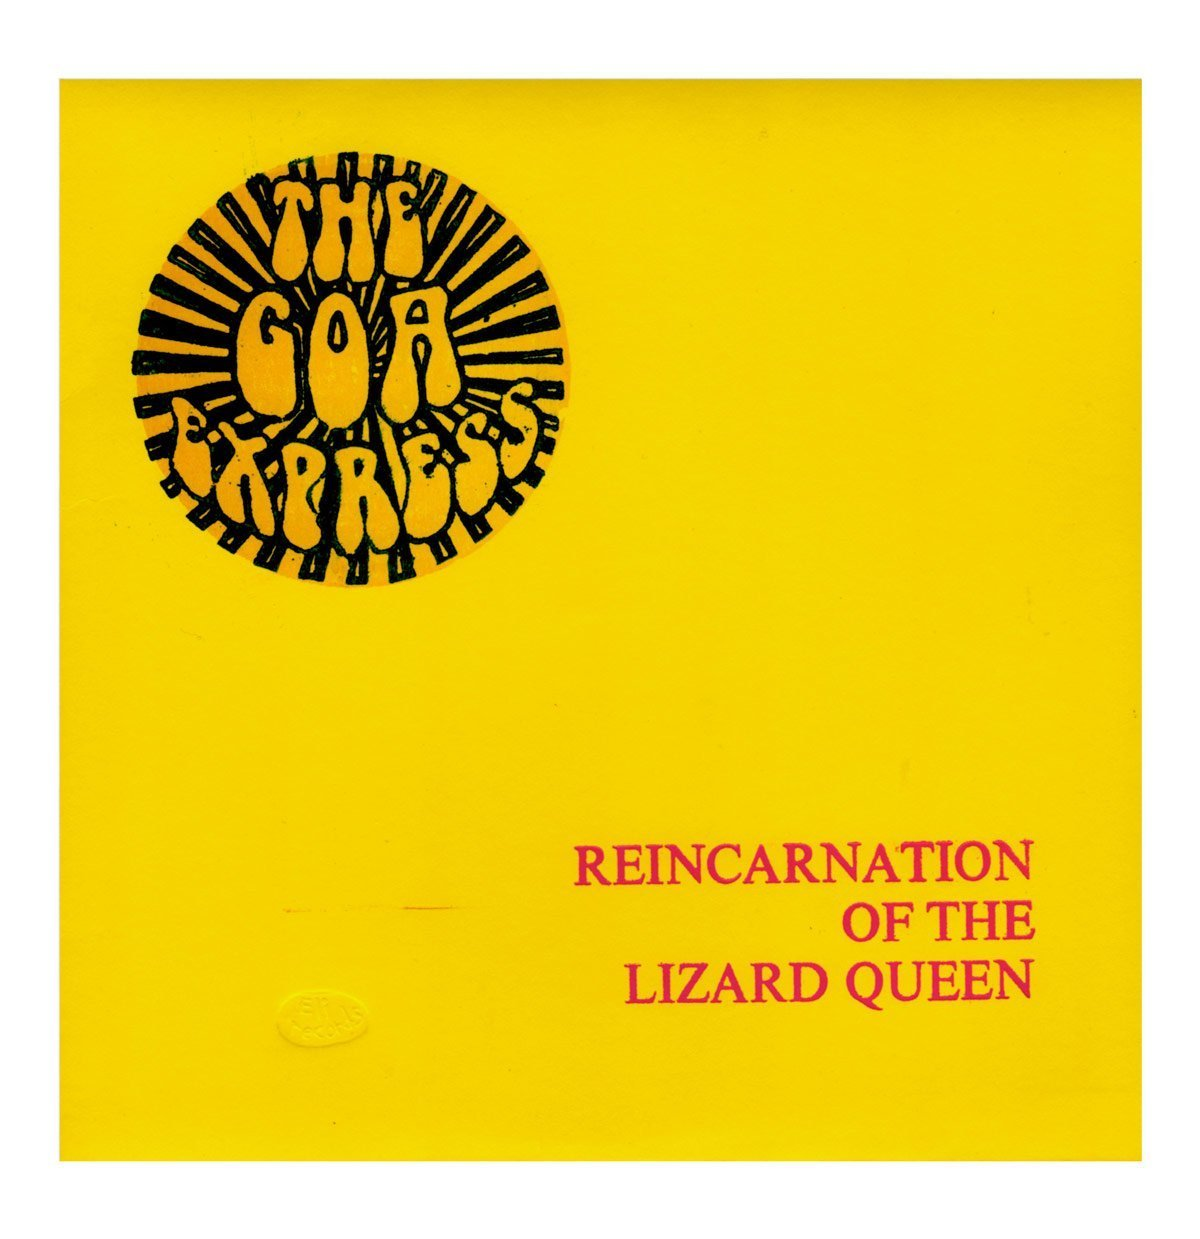 The Goa Express Reincarnation of The Lizard Queen Front Sleeve - From Eli Records